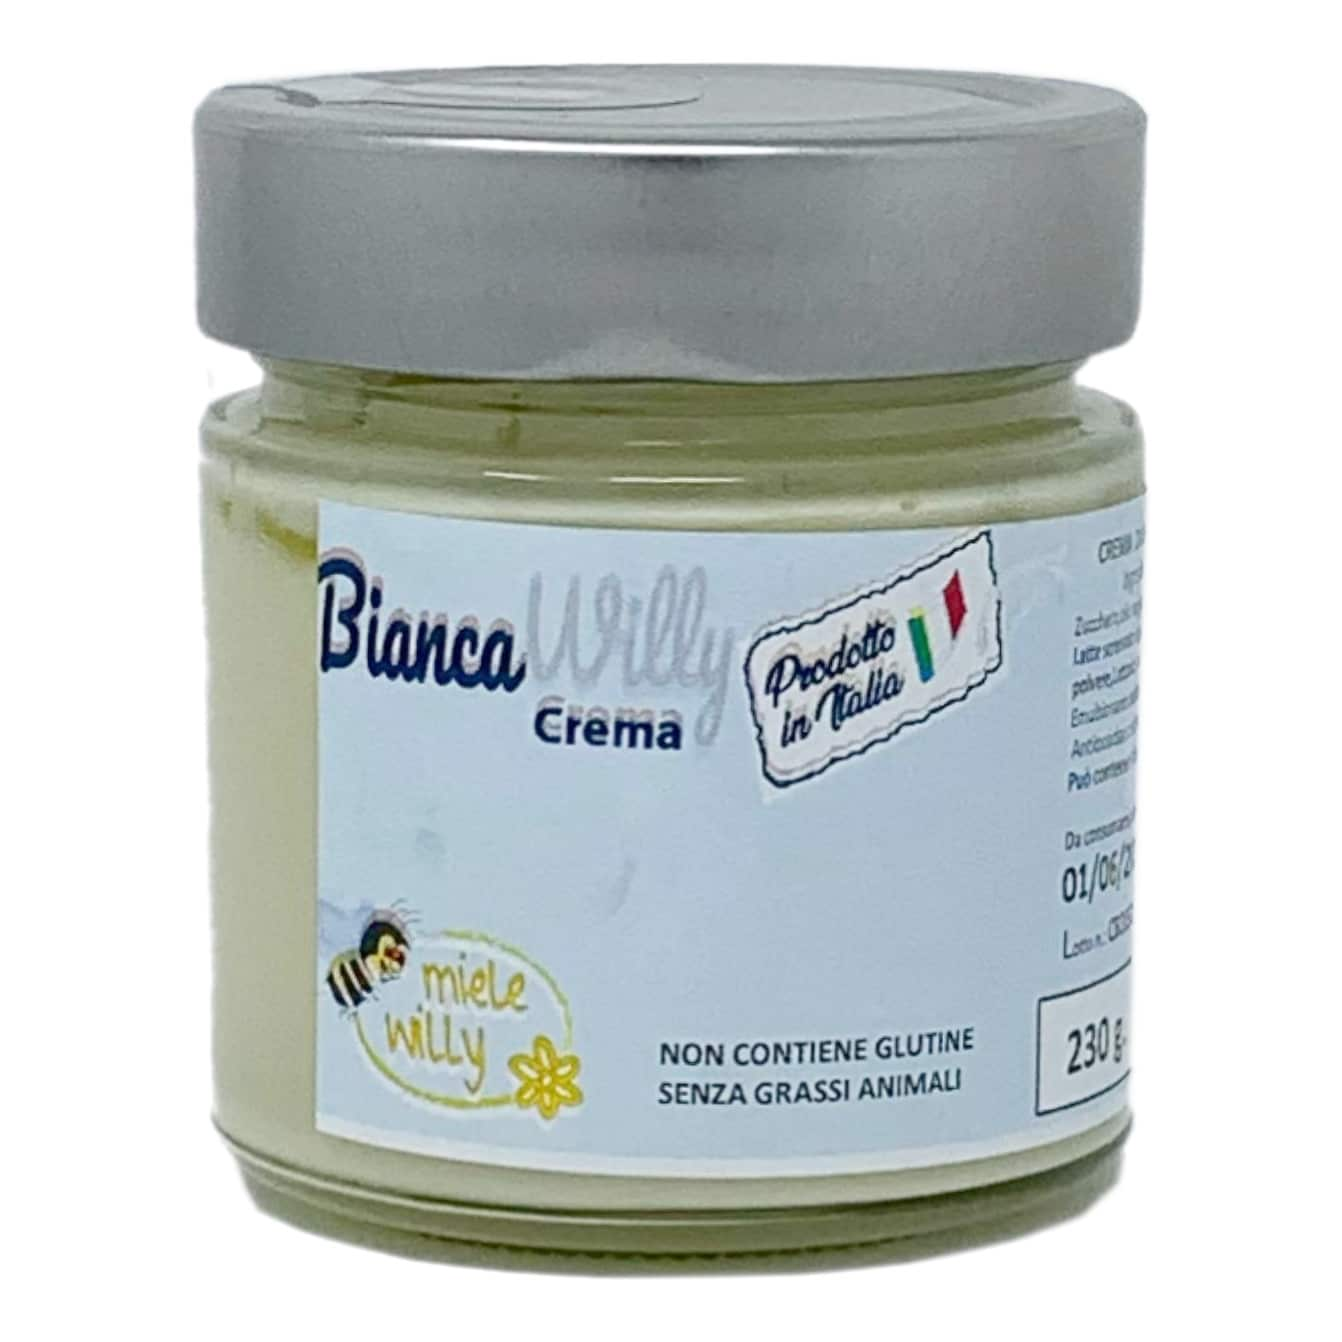 CREMA BIANCA WILLY Spalmabile 250G Miele Willy